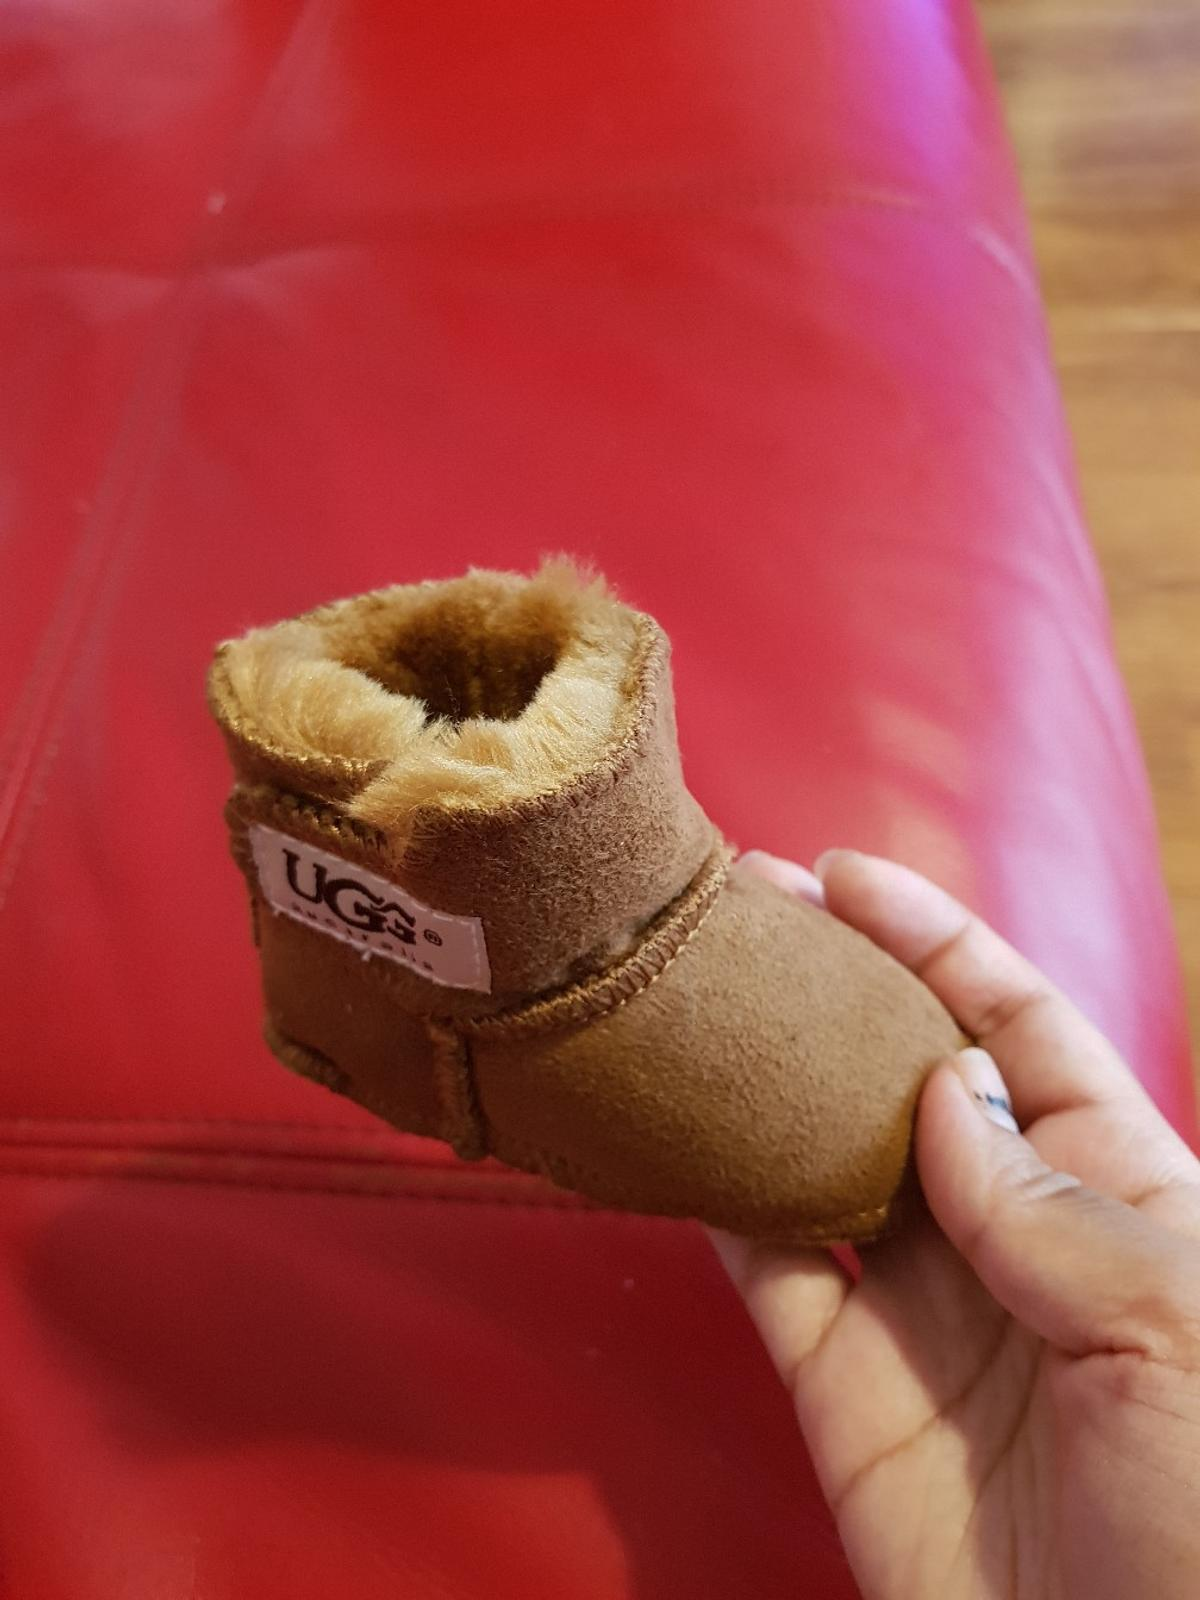 57453ca87b8 Tan/Brown baby UGG Boots in ME5 Chatham for £10.00 for sale - Shpock